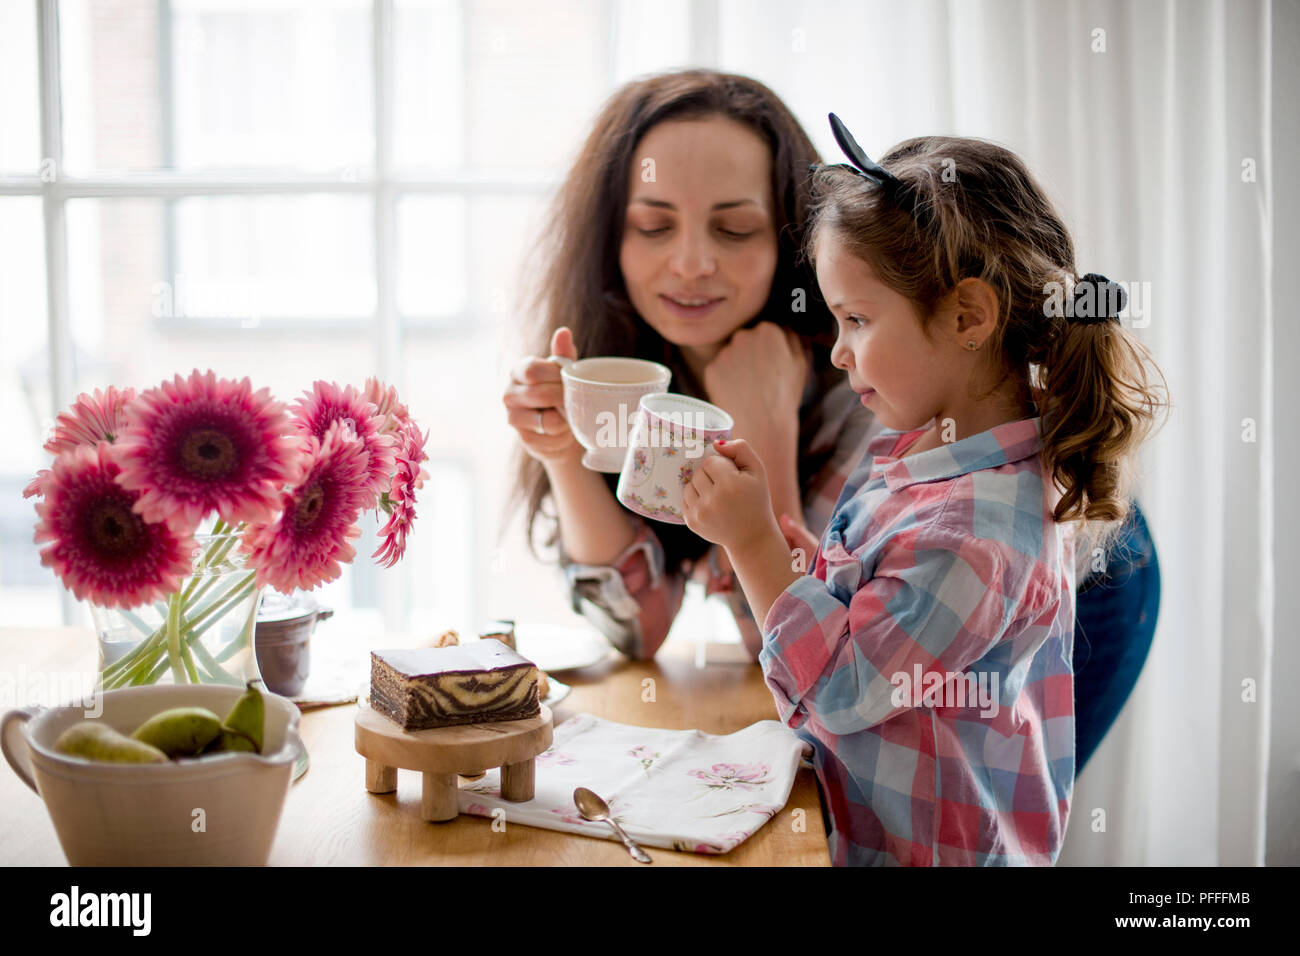 A woman and a little daughter are eating breakfast at home at a table by the window. Happy family and breakfast. Good morning at home. Free space for text. - Stock Image